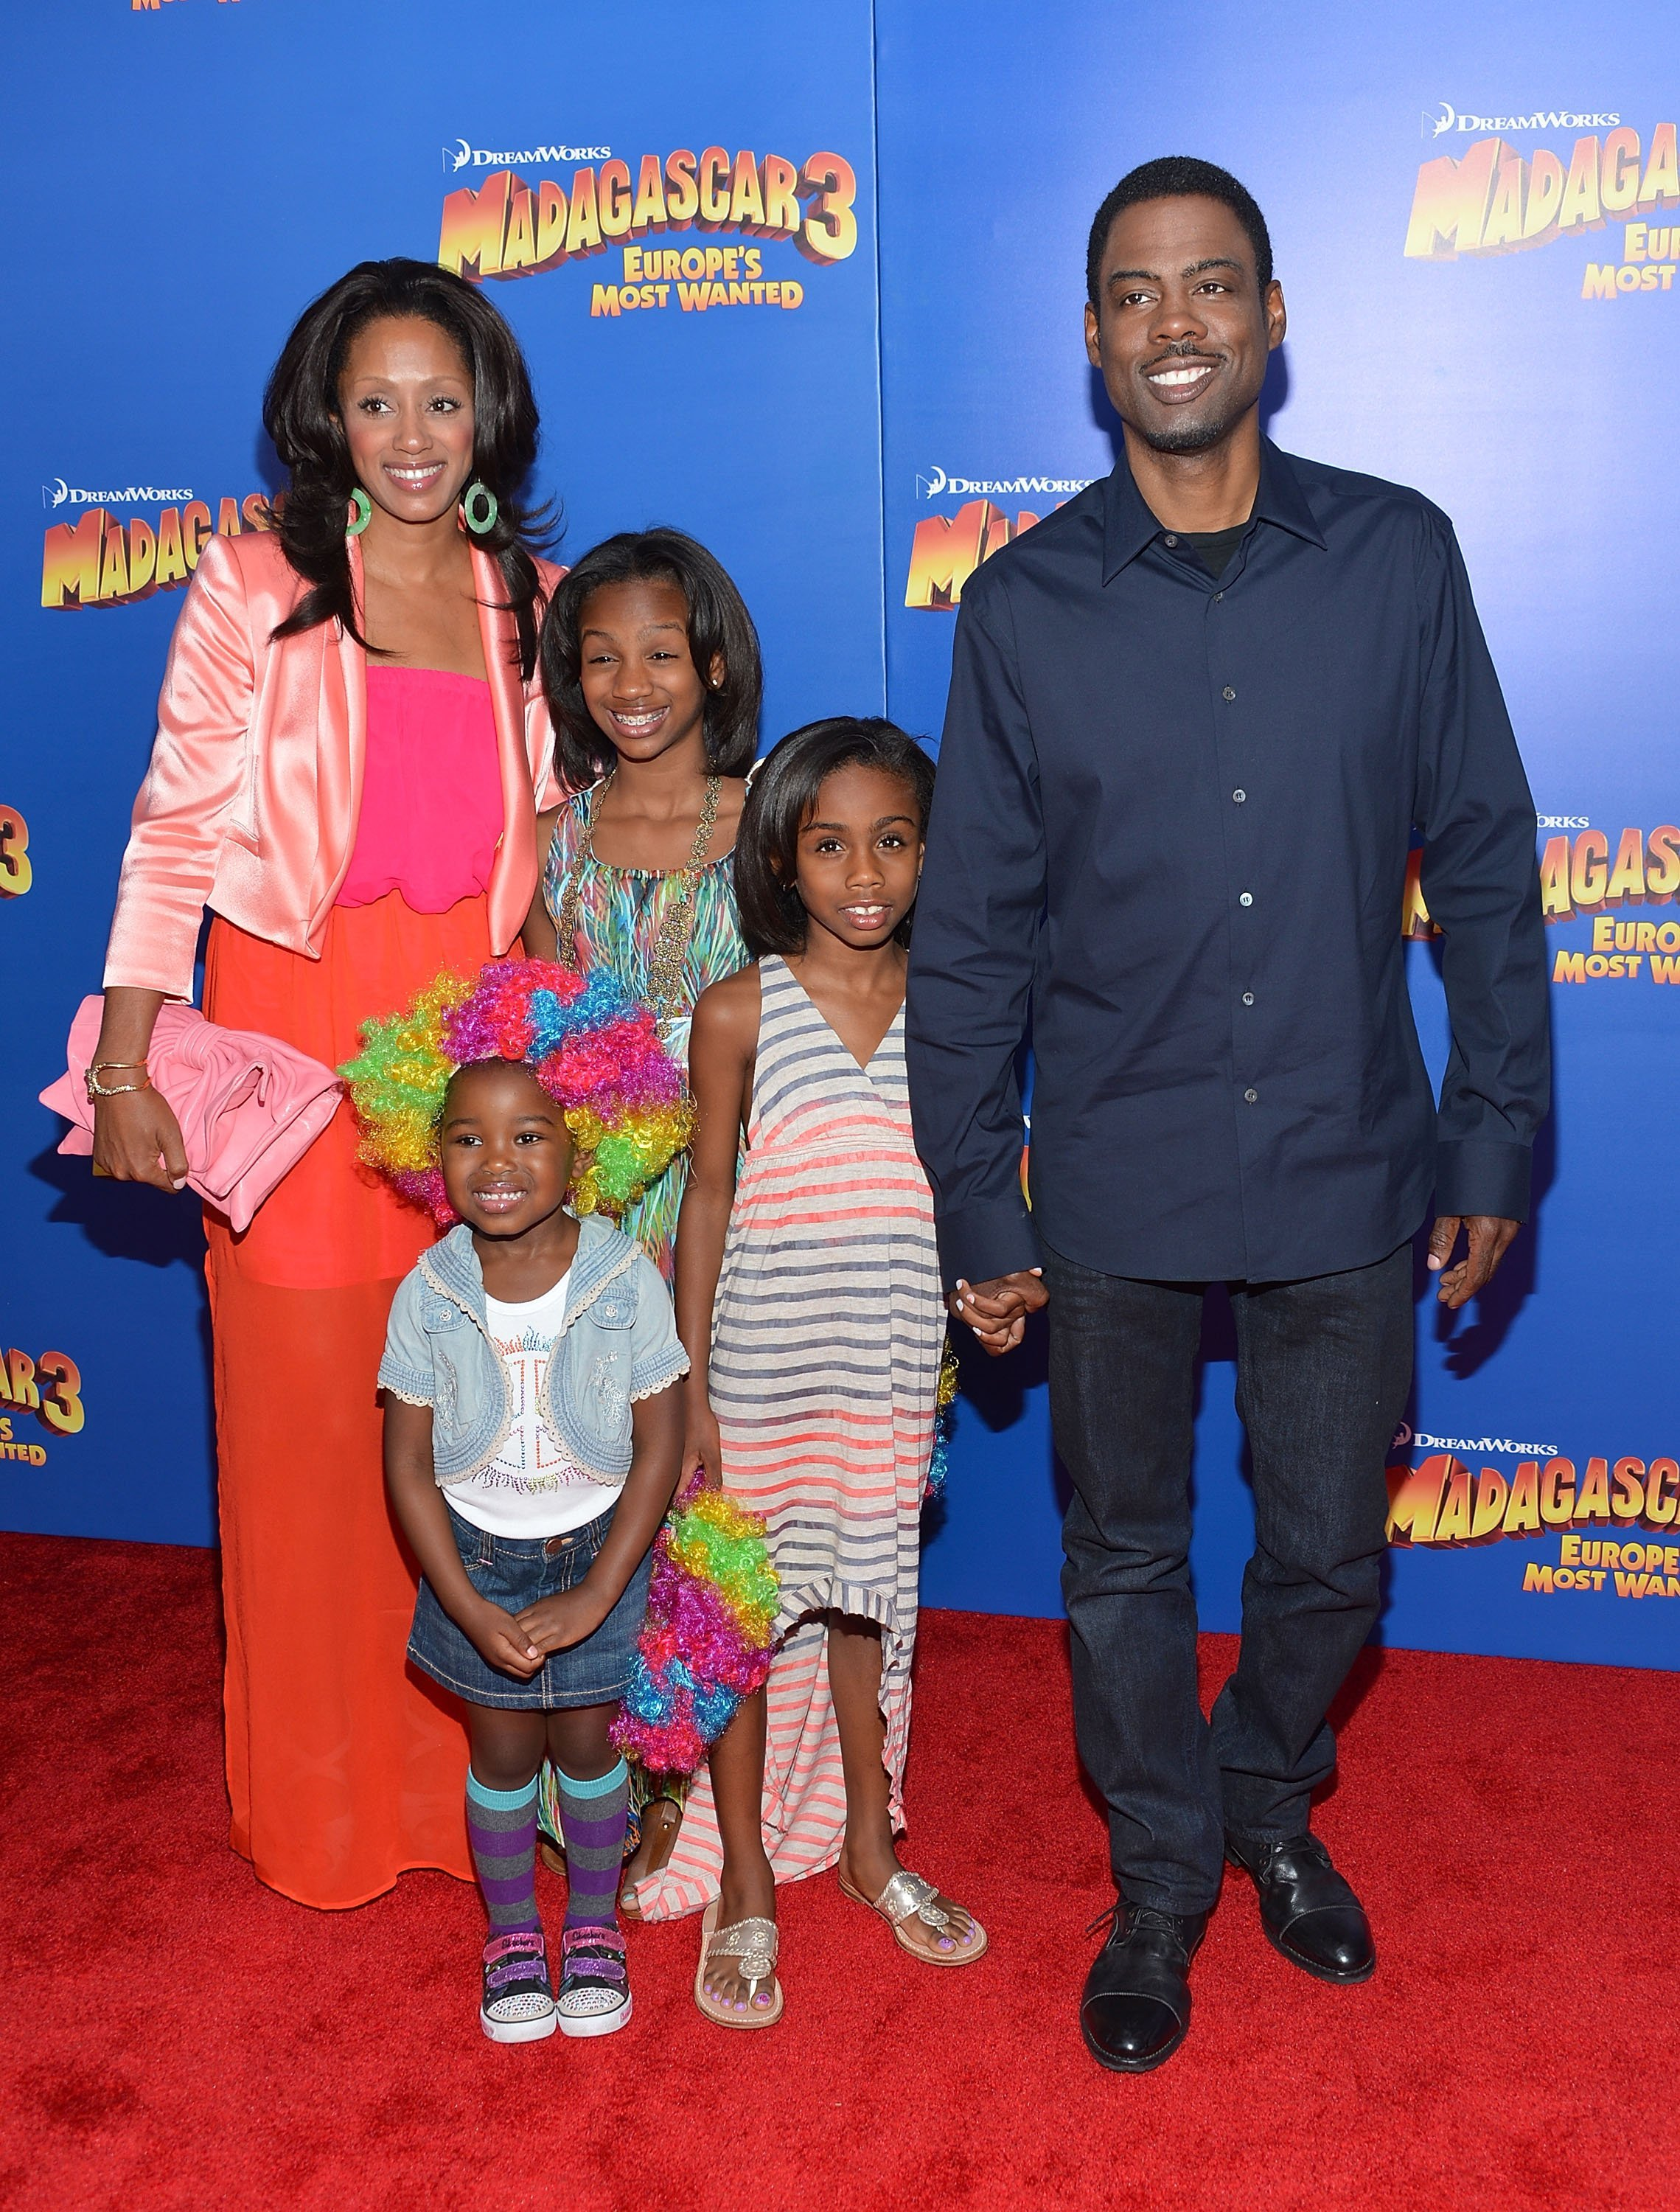 "(L-R) Malaak Compton-Rock, Ntombi, Lola, Zahra & Chris Rock at the ""Madagascar 3: Europe's Most Wanted"" on June 7, 2012 in New York City. 